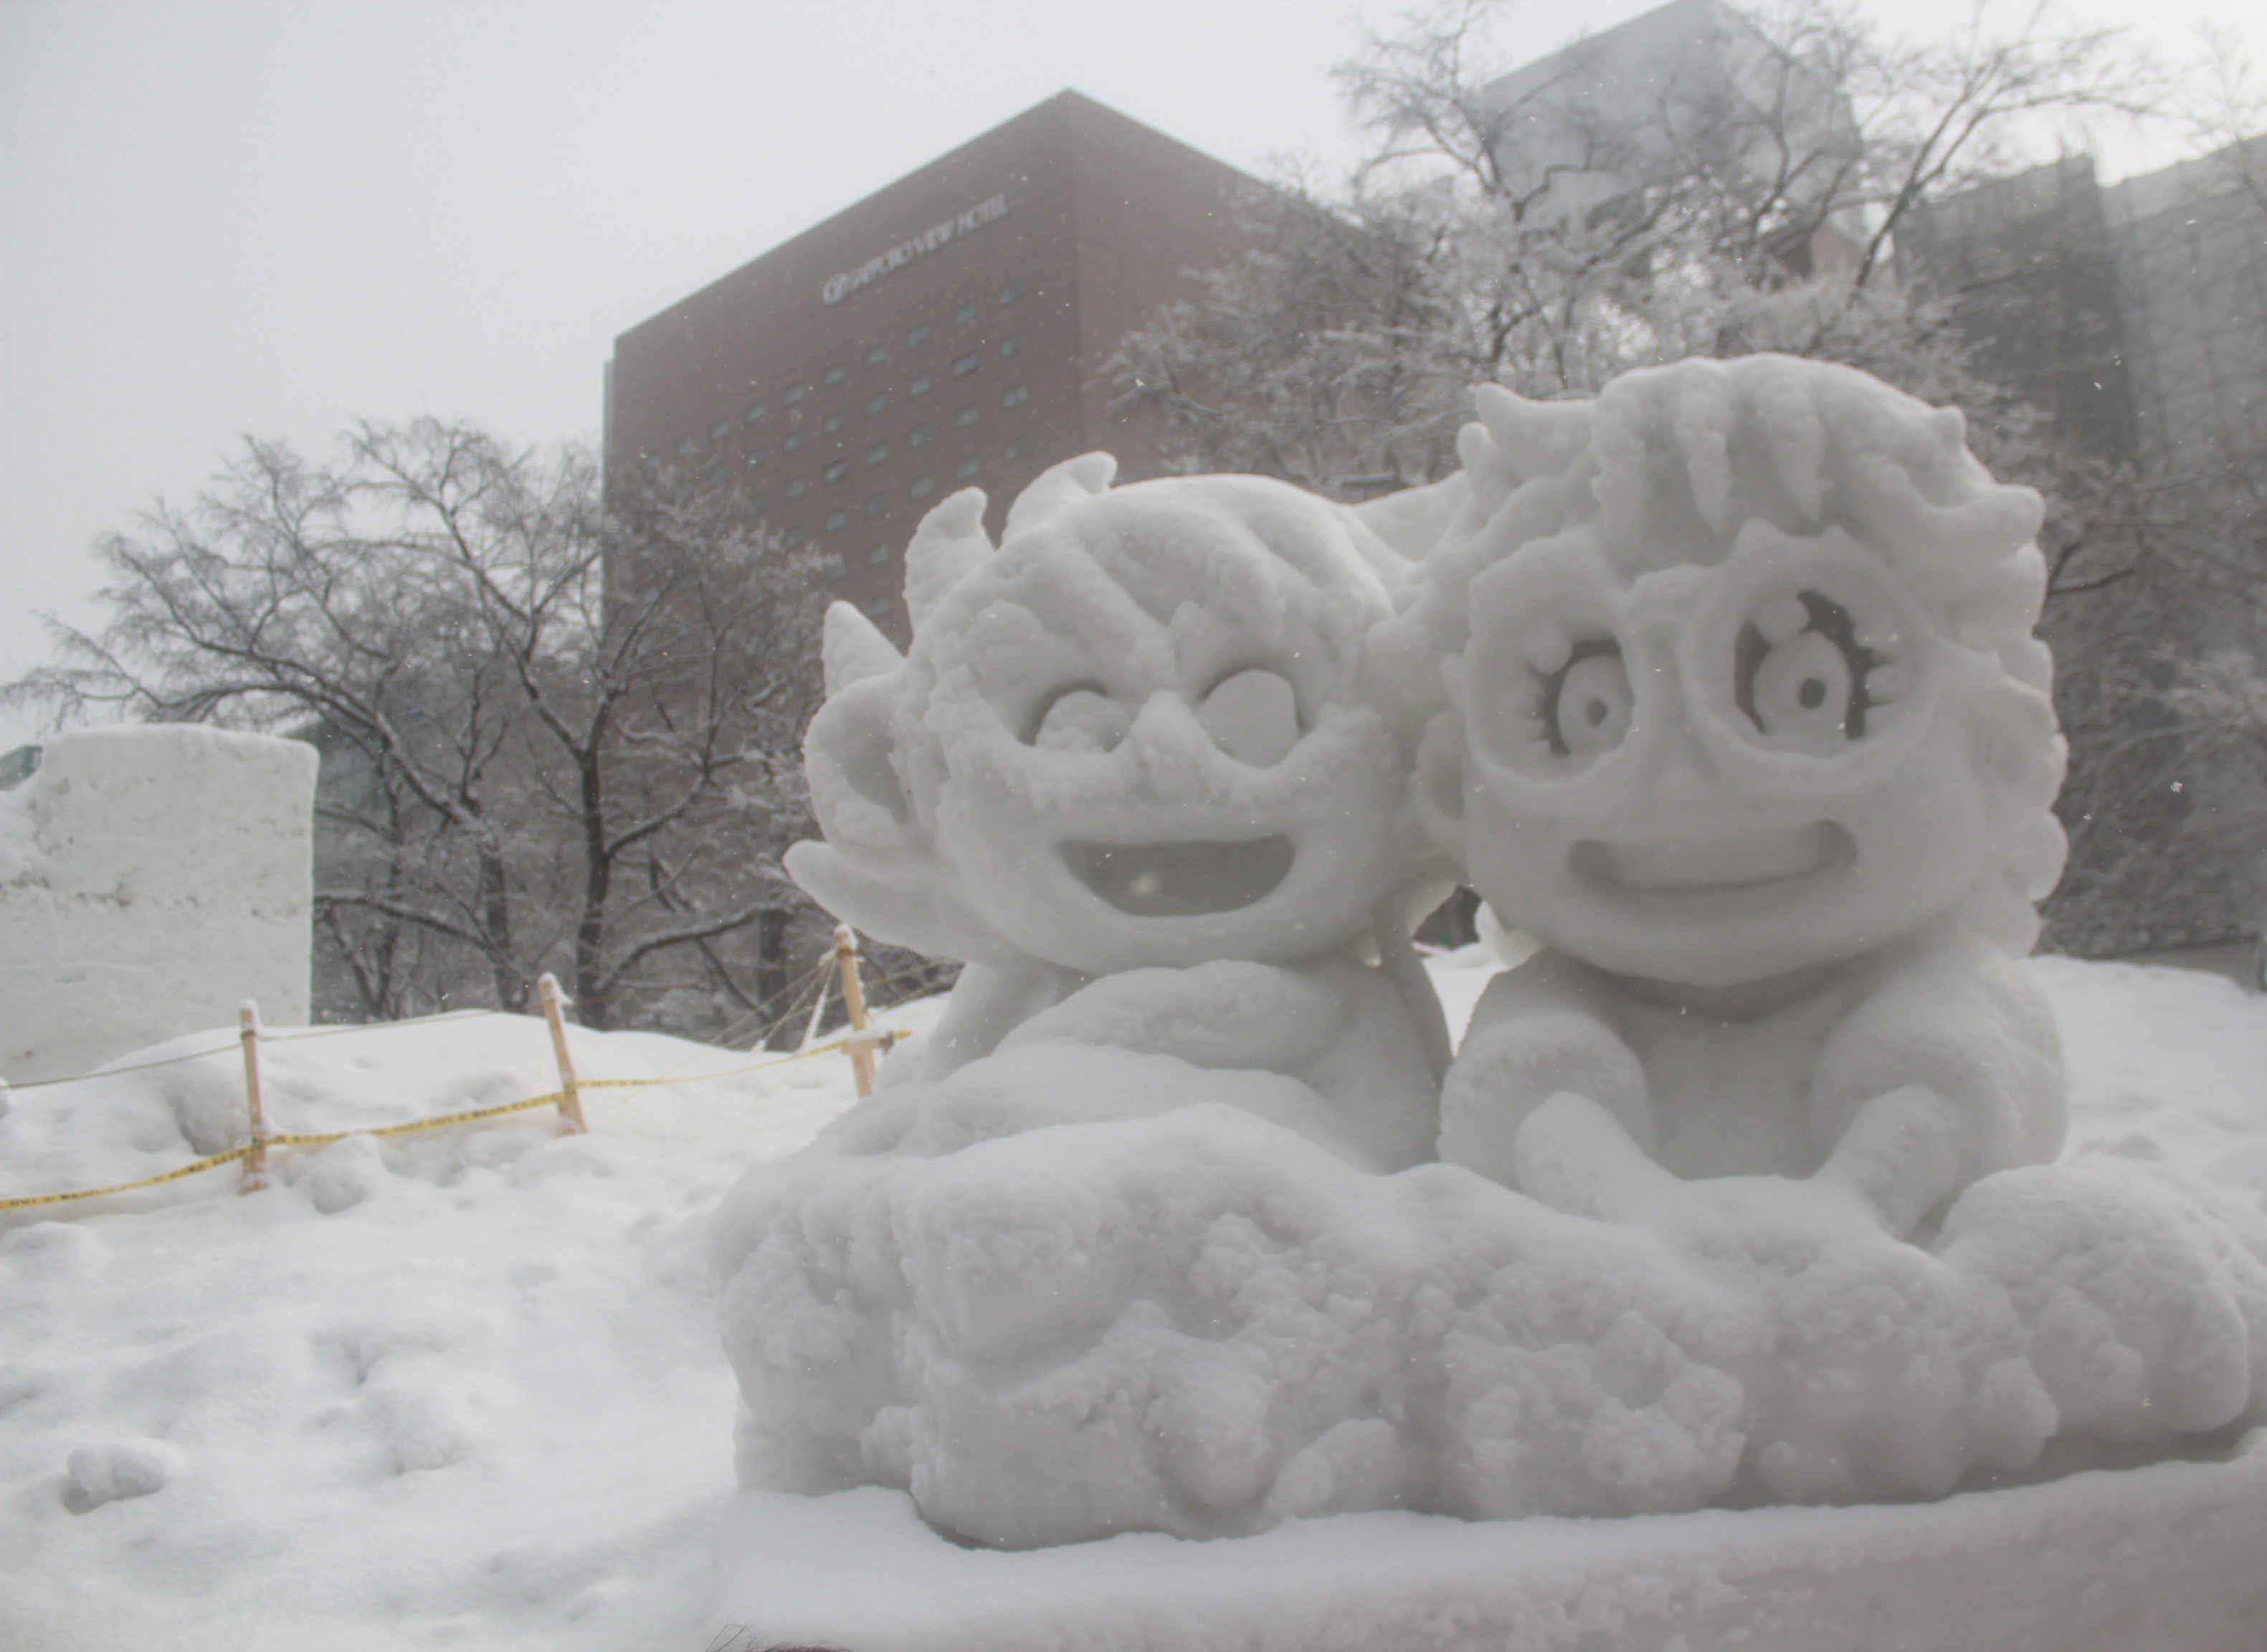 Snow sculptures of characters from anime/ manga